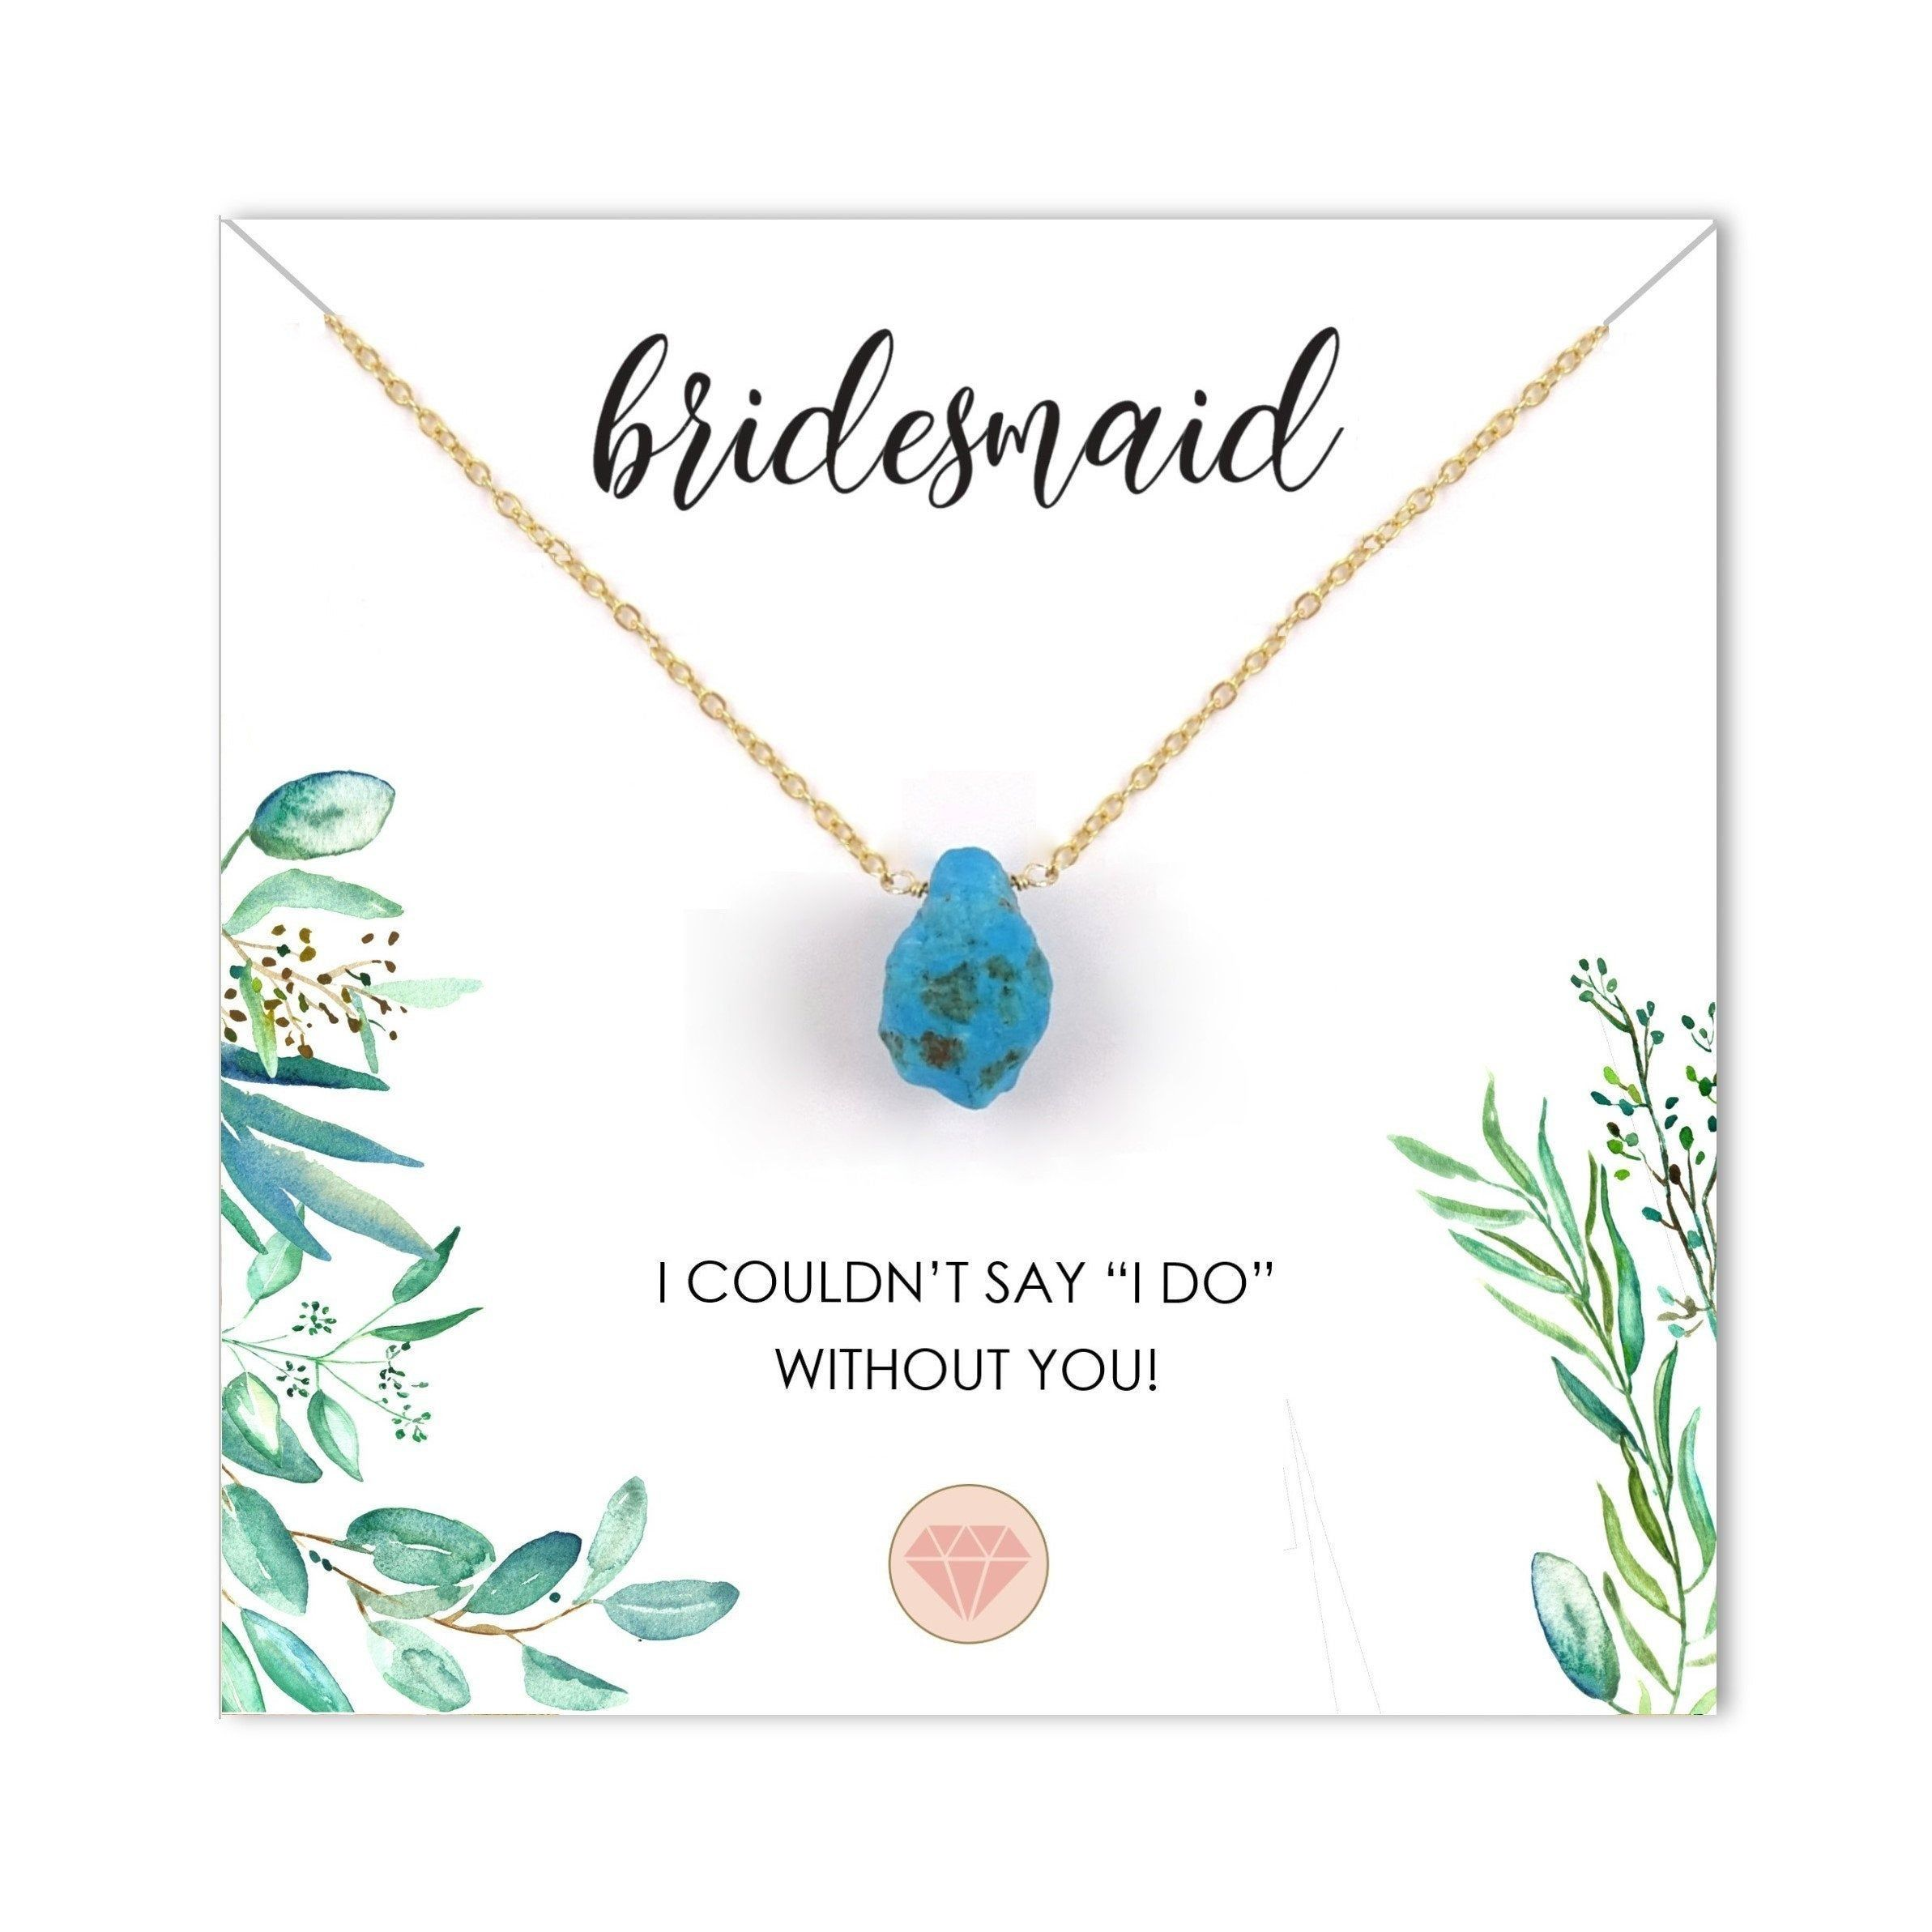 Bridesmaid Gift Necklace with Card / Turquoise Birthstone Wedding Gift / Natural Gemstone / Genuine Raw Stone Jewelry for Bridesmaids